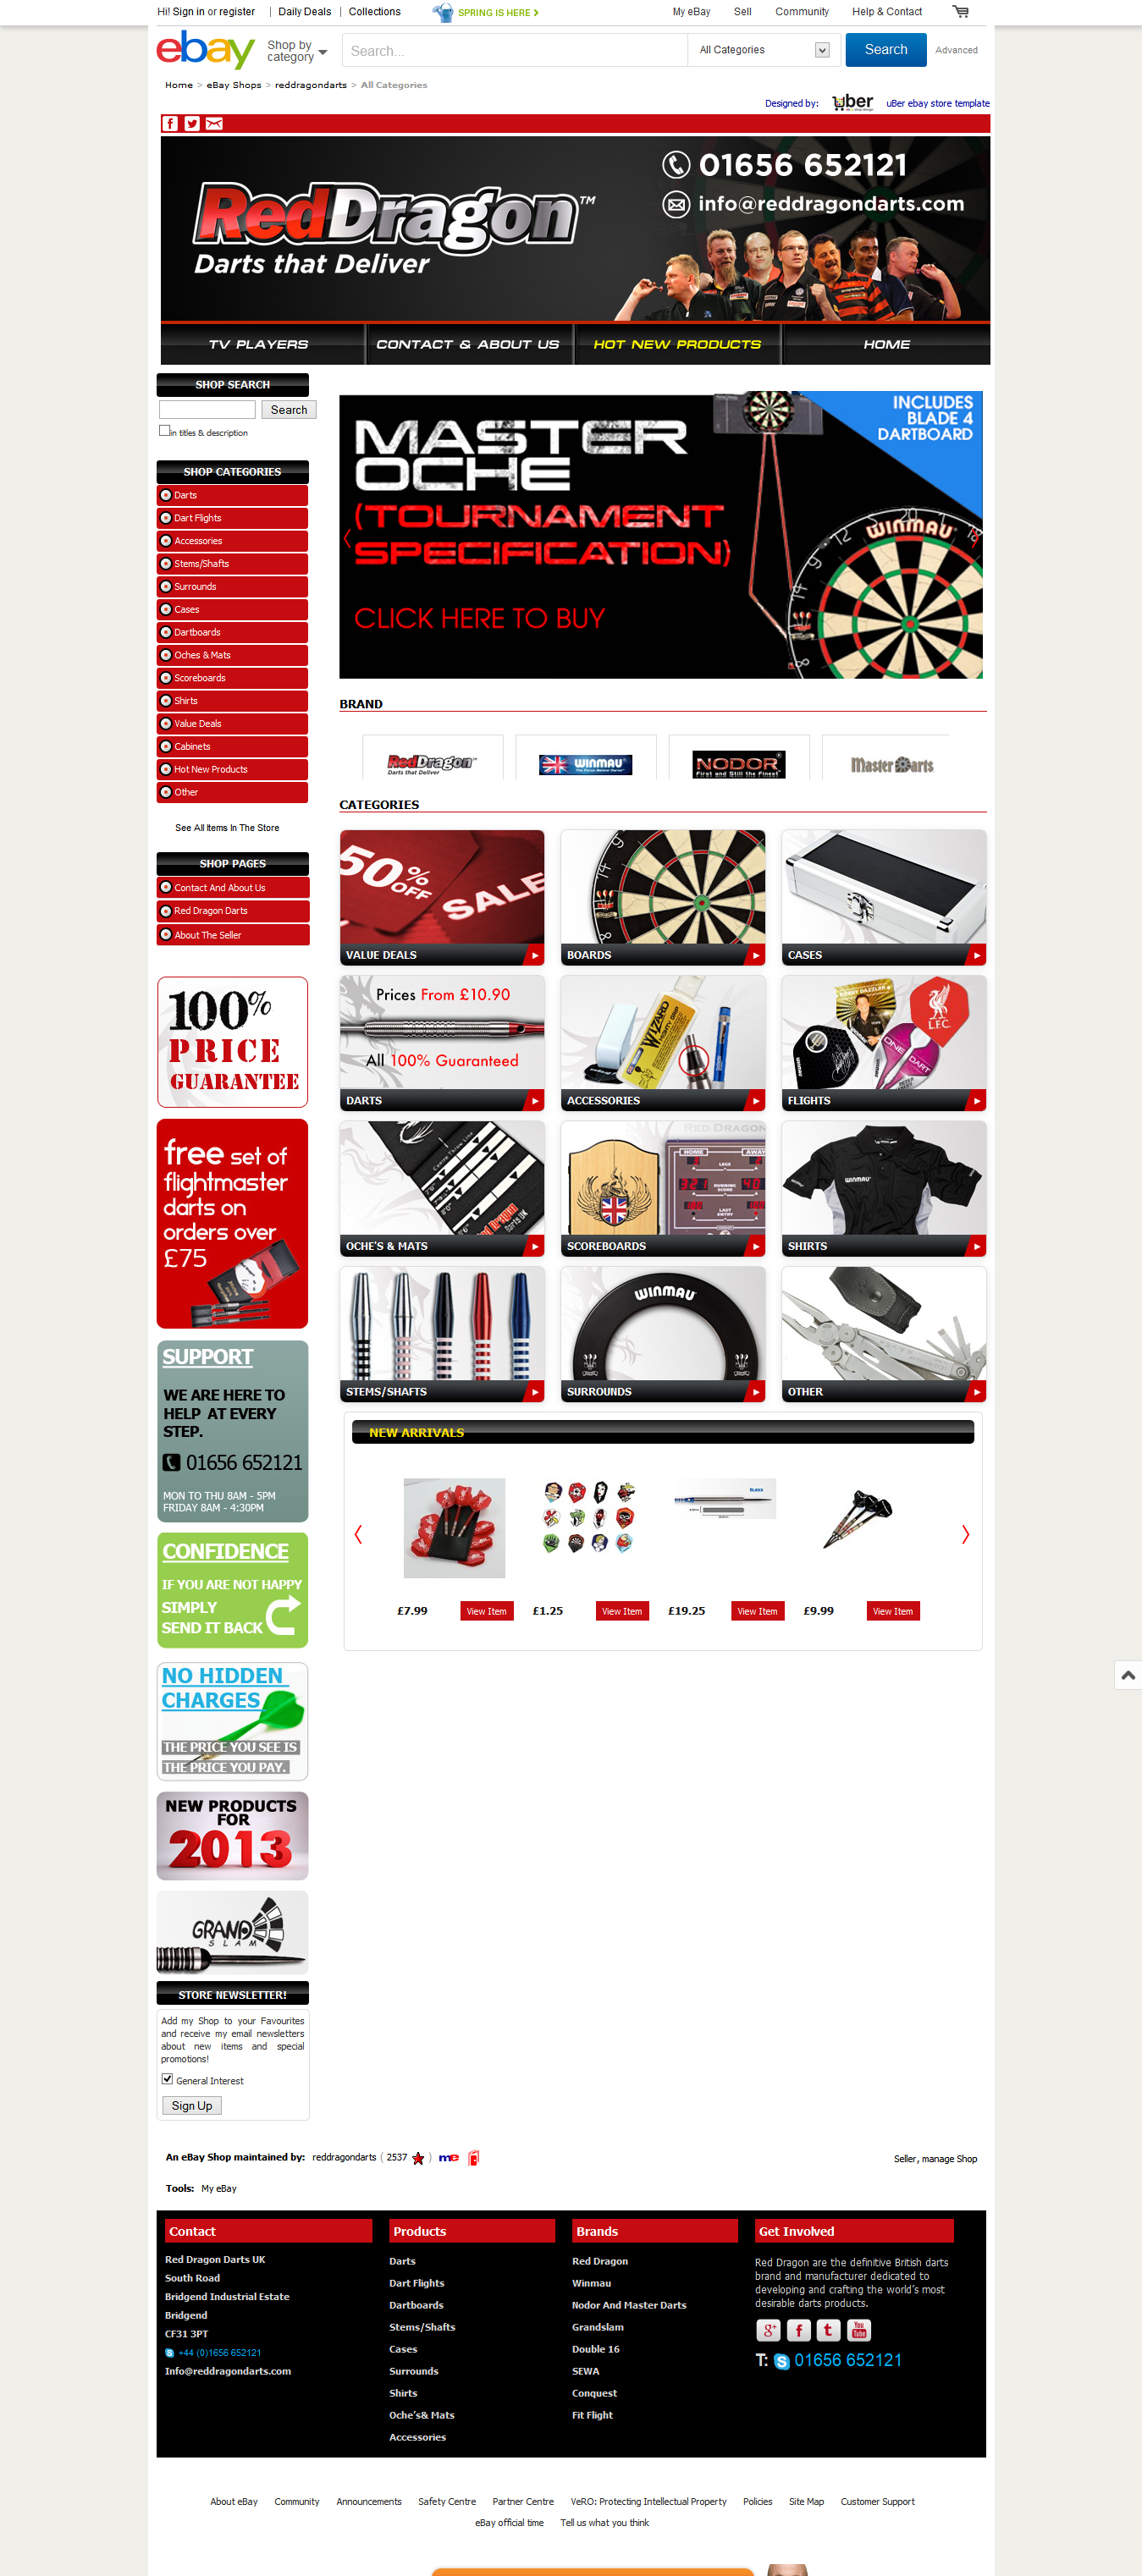 Red Dragon Darts ebay shop design